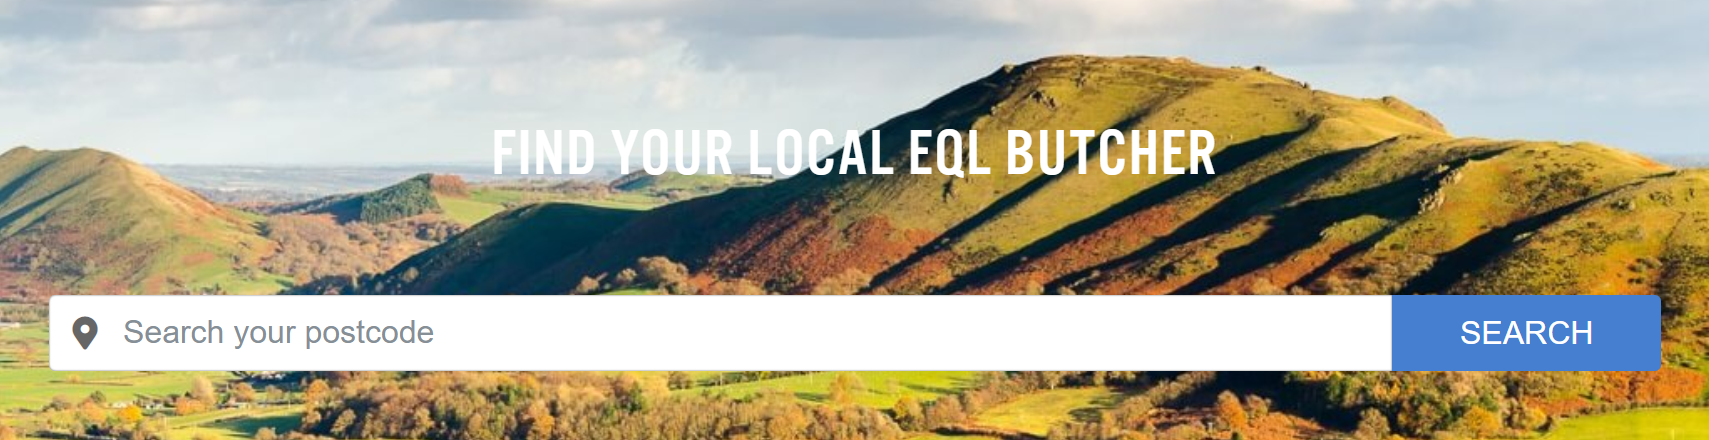 FIND YOUR LOCAL EQL BUTCHER